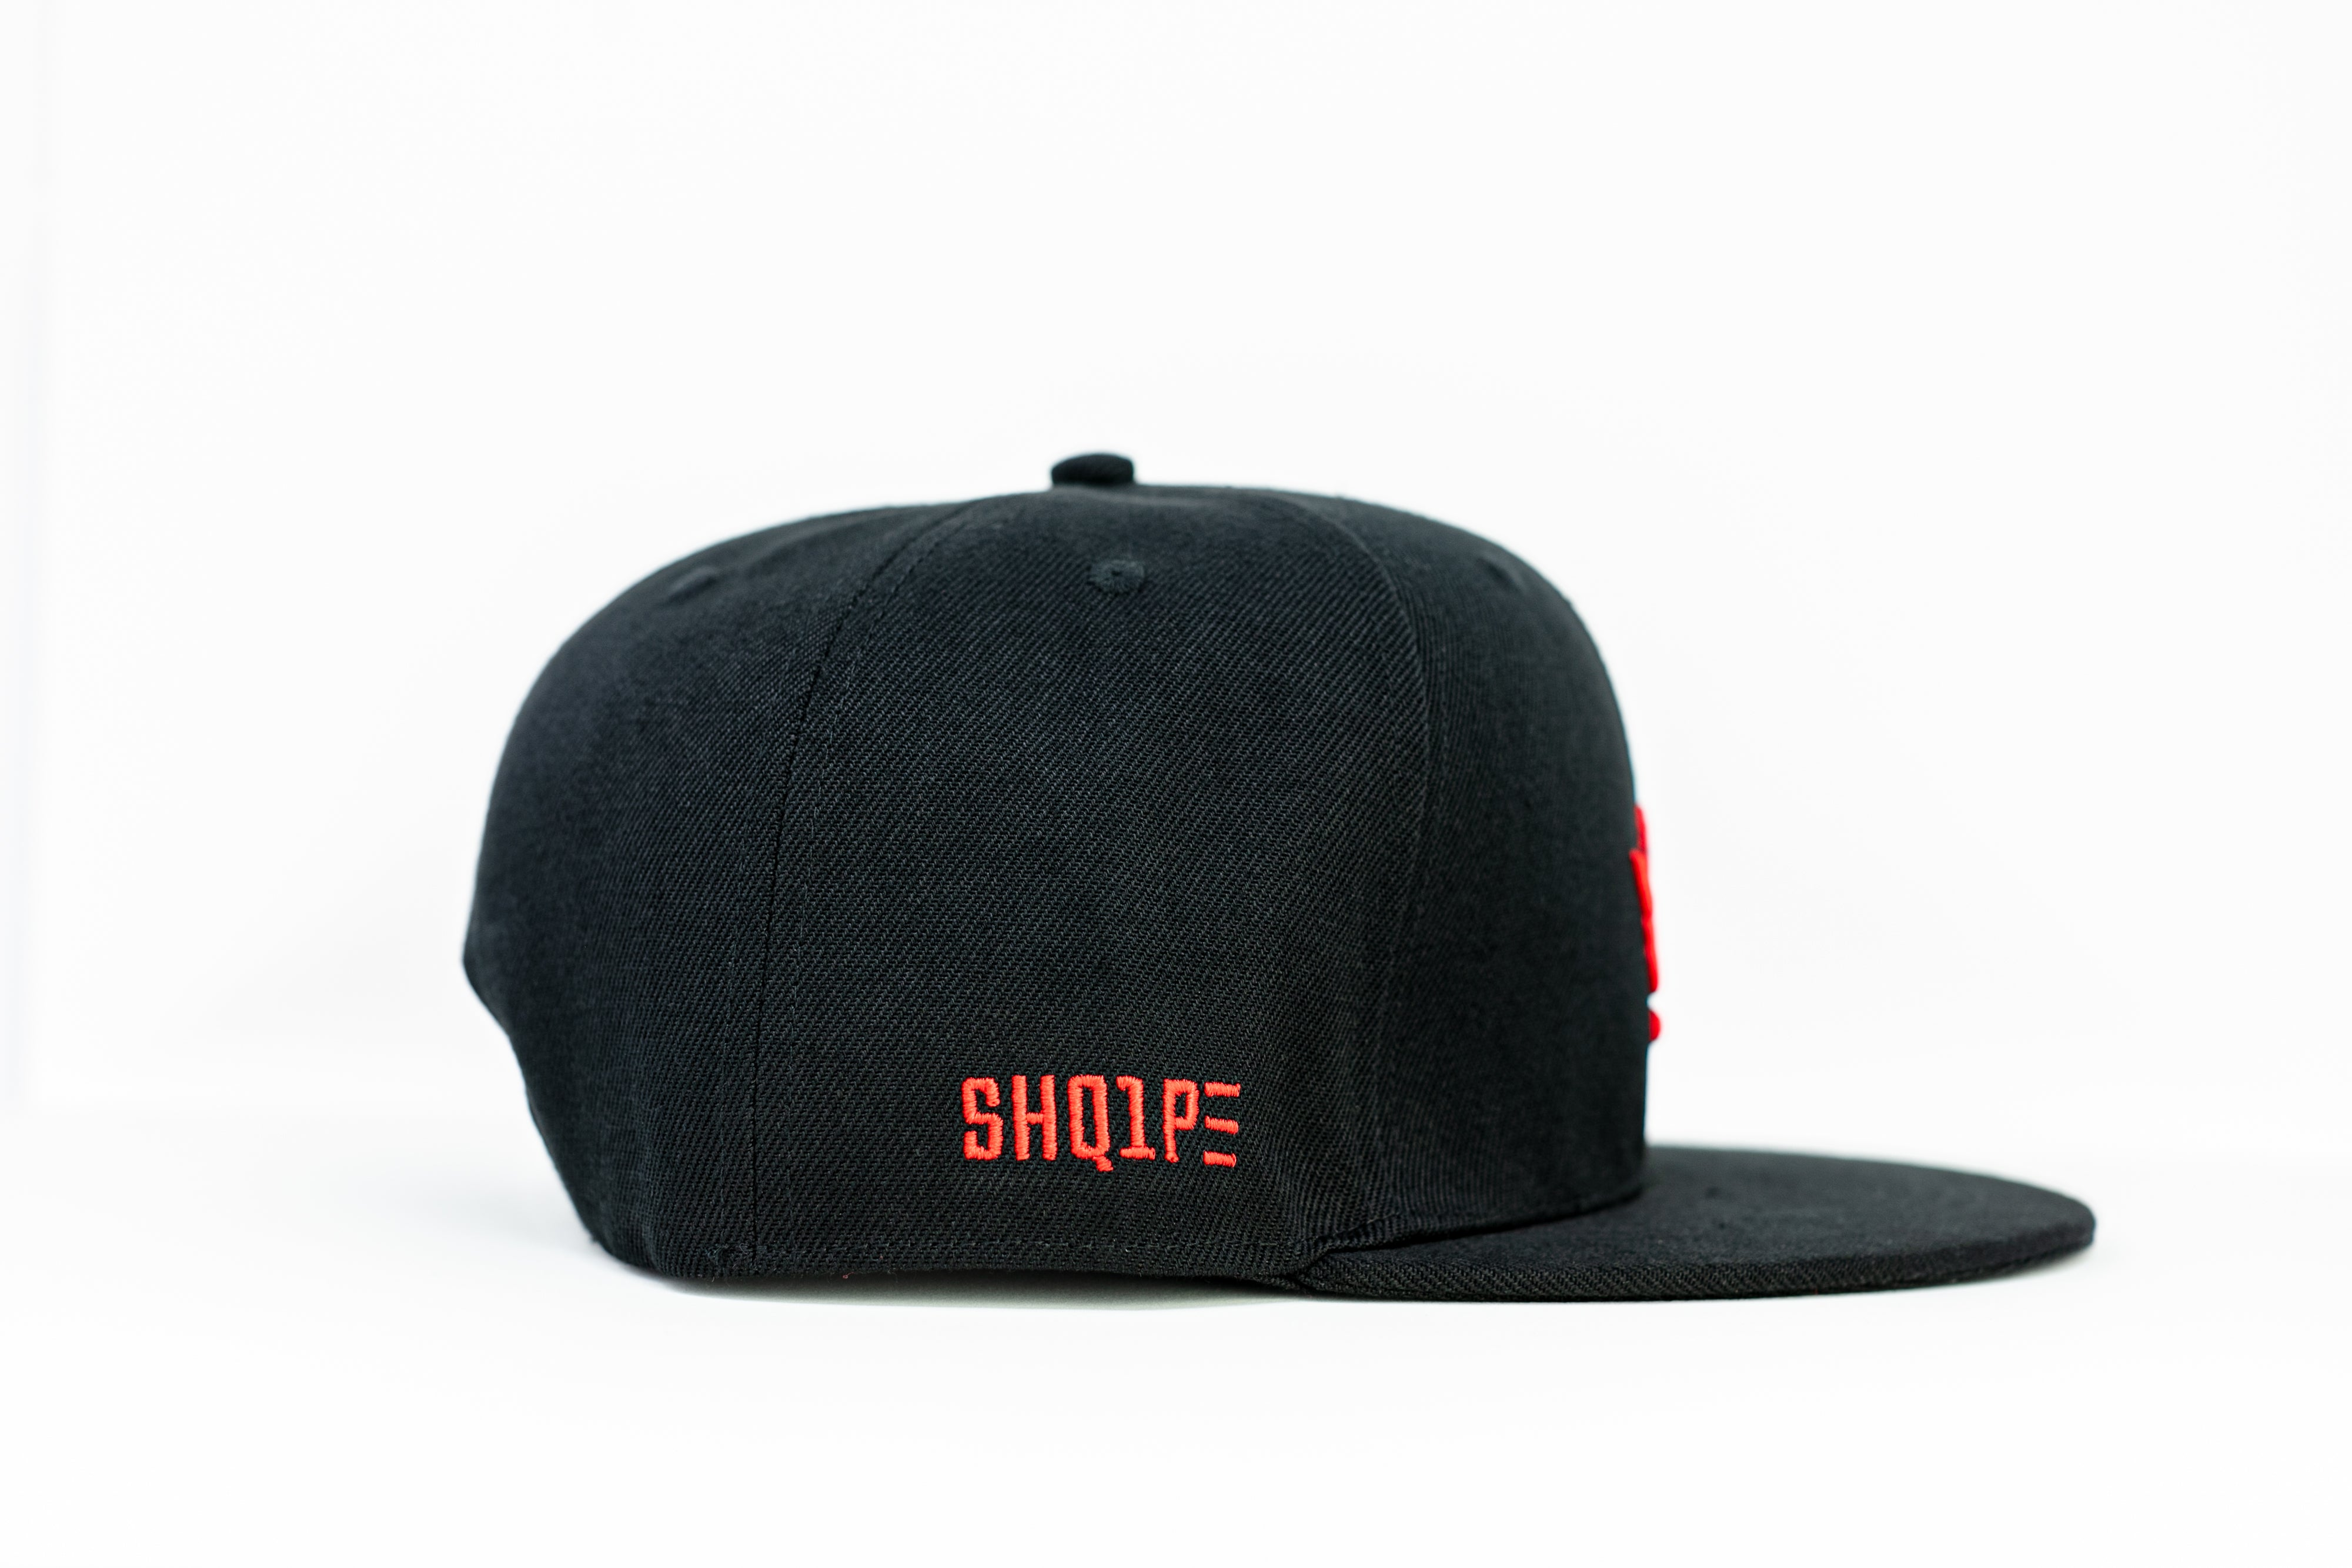 1st Edition Shq1pe Snapback Black/Red